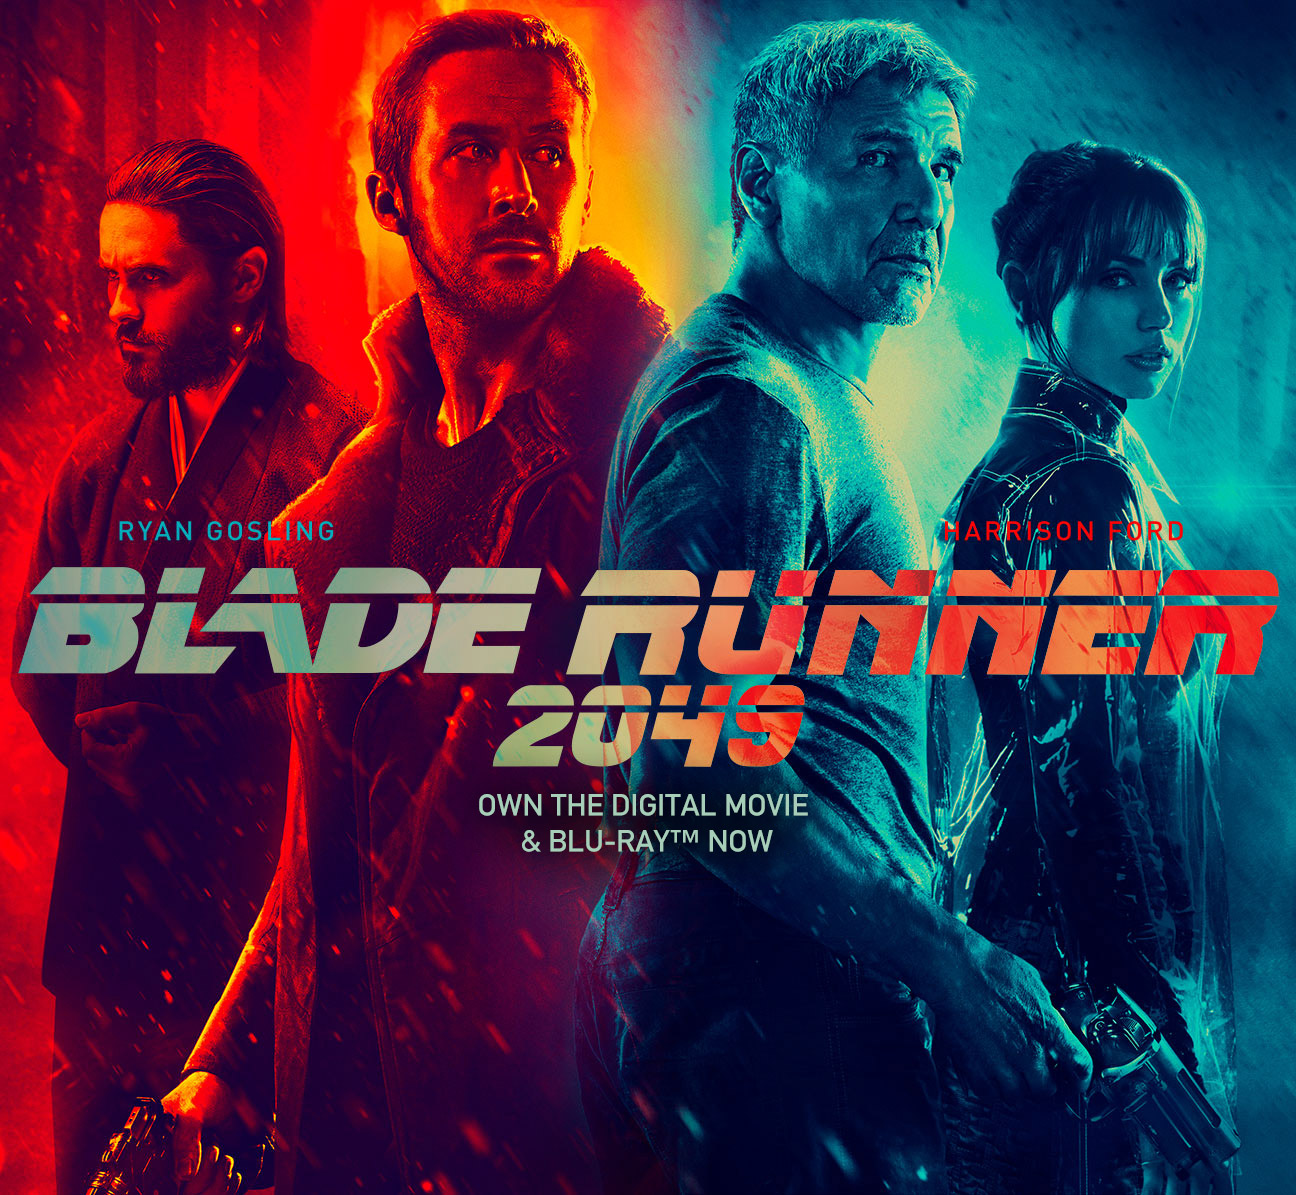 Blade Runner 2049 – Official Movie Site – Own The Digital Movie